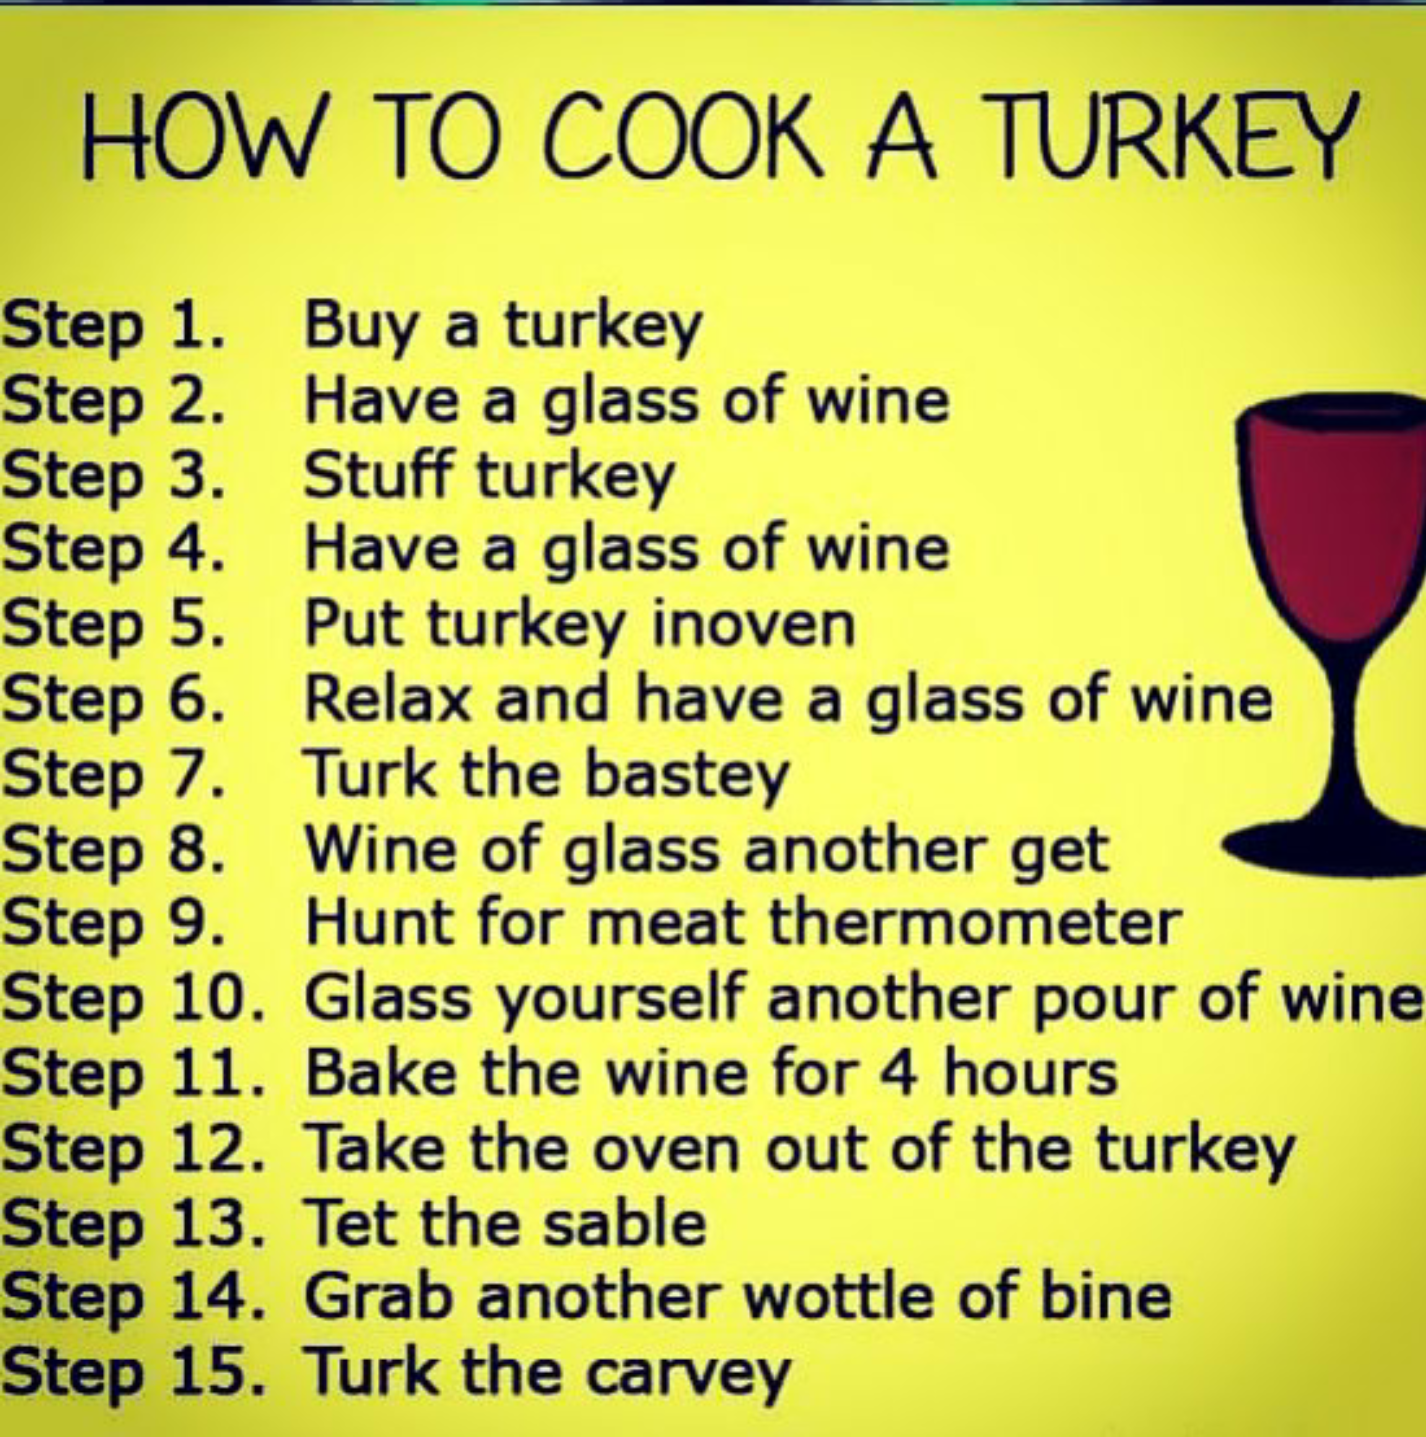 wine wankers christmas images how to cook a turkey wine it pairs perfectly with christmas the wine wankers